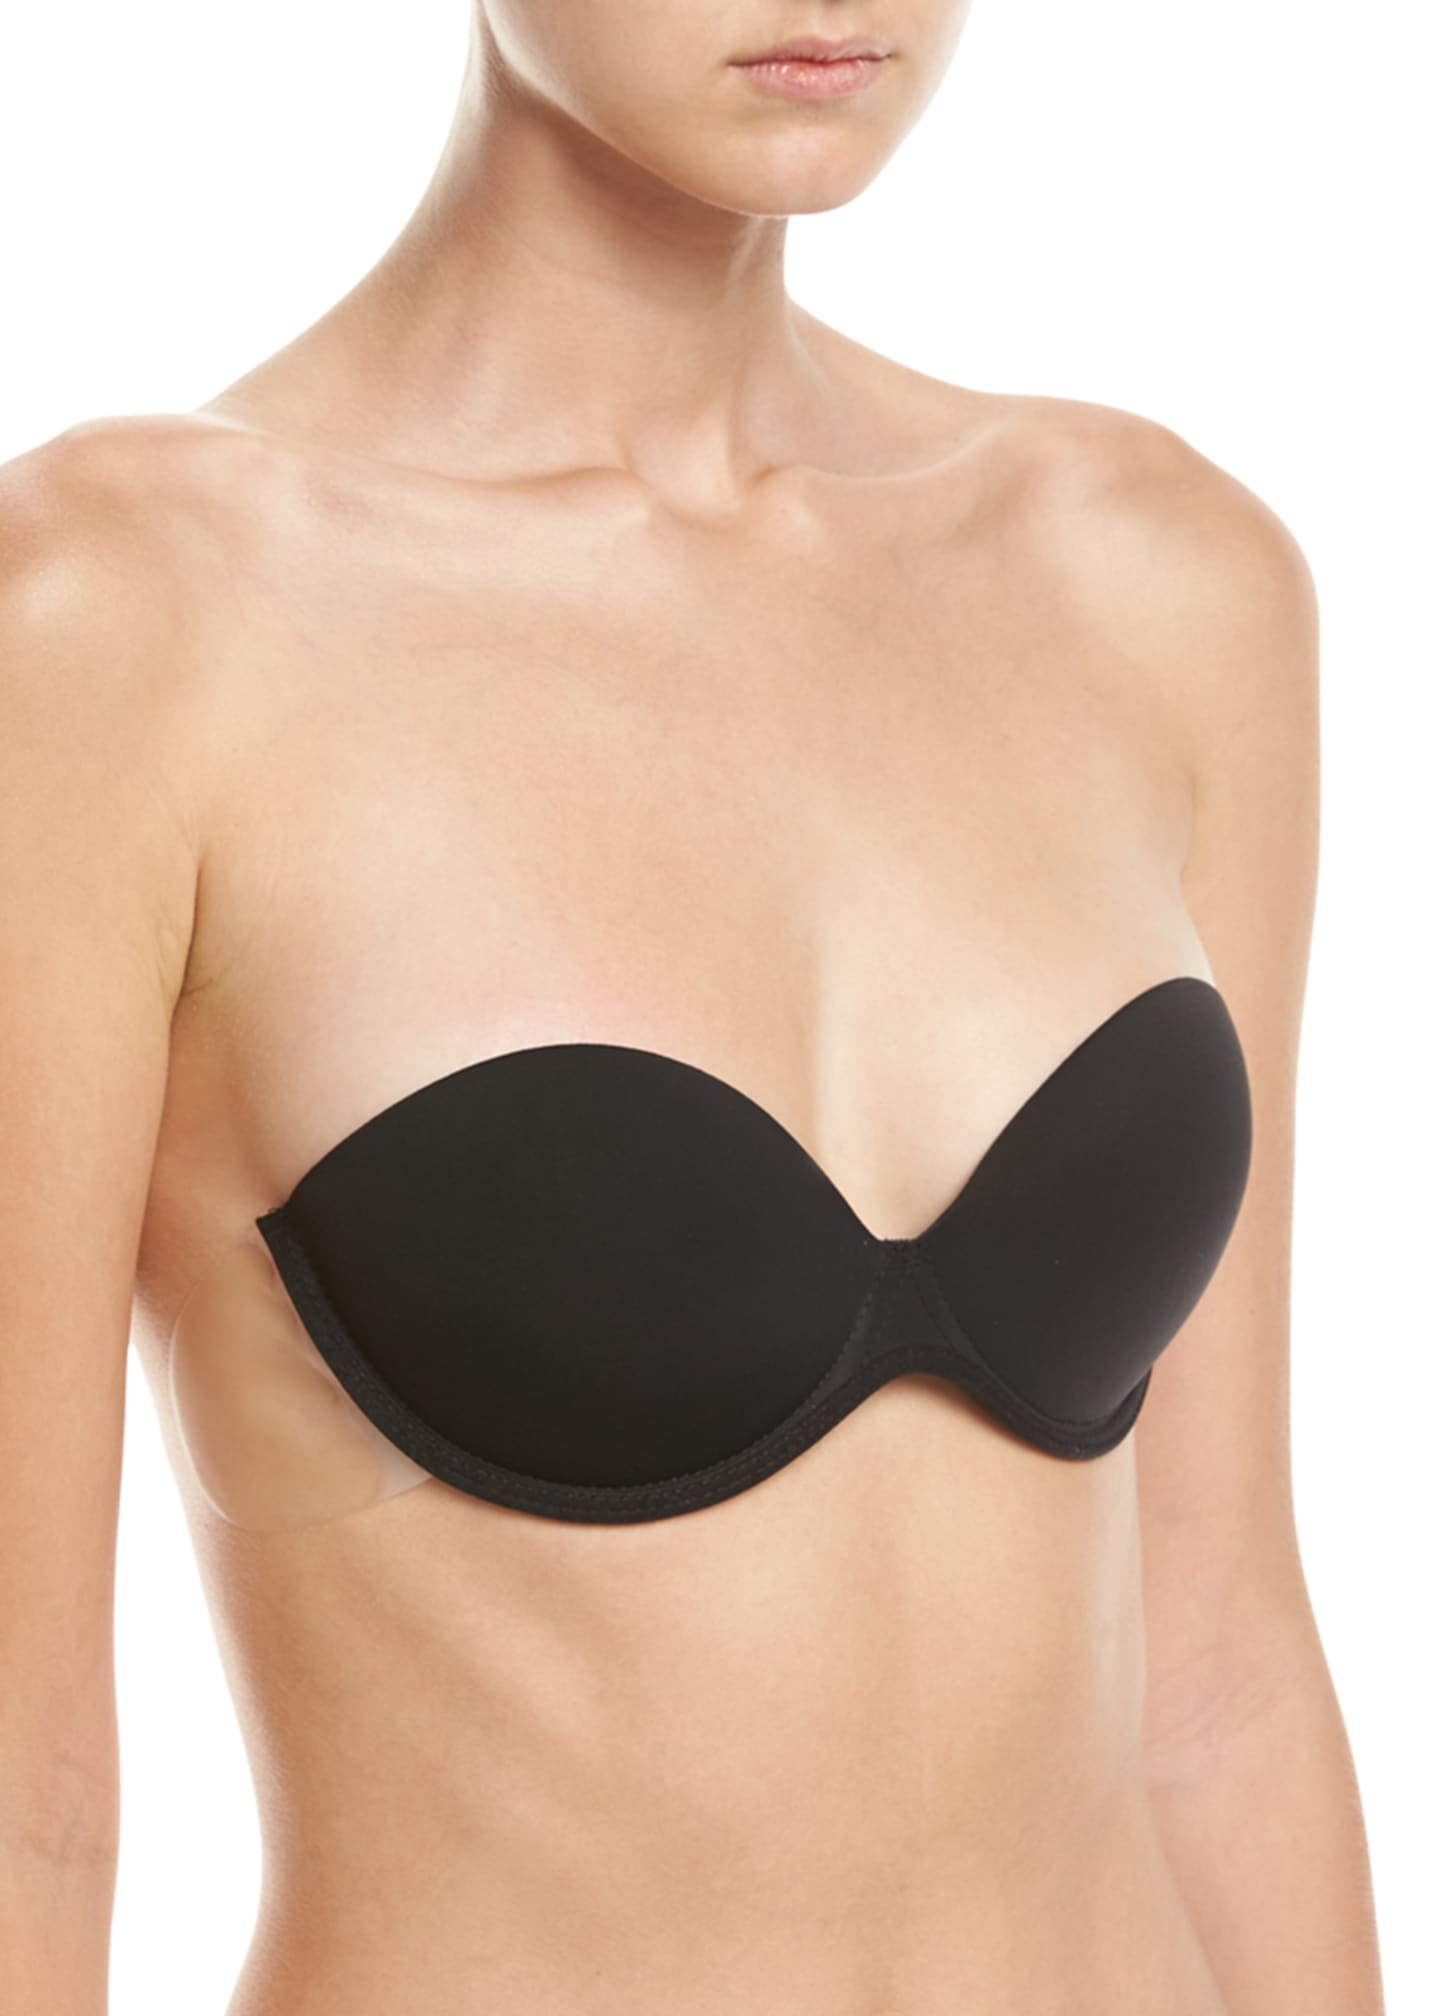 Fashion Forms Go Bare Backless/Strapless Push-Up Bra